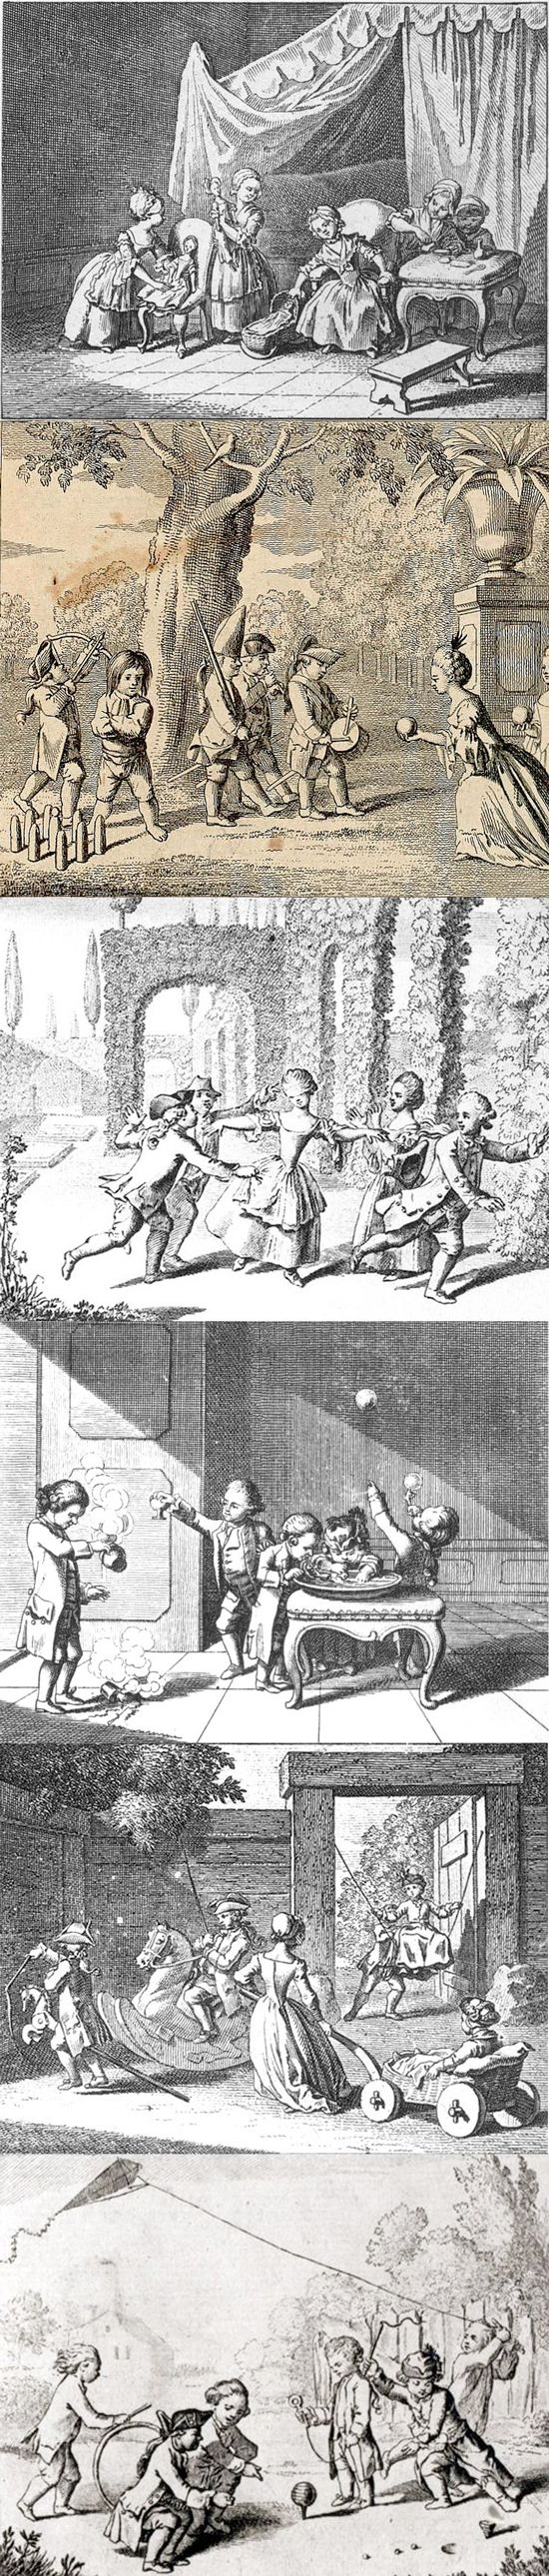 Children's amusements, 1774, etchings by Daniel Niklaus Chodowiecki (16 October 1726 – 7 February 1801) published in Johann Bernhard Basedow's Das Elementarwerk für die Jugend und ihre Freunde (Berlin and Dessau, 1774. Images of children playing various games and amusing themselves—dolls, hobby horses, blowing bubbles, playing at soldiers, ten pin bowling, flying kites, spinning tops, hoops, playing blind man's bluff etc